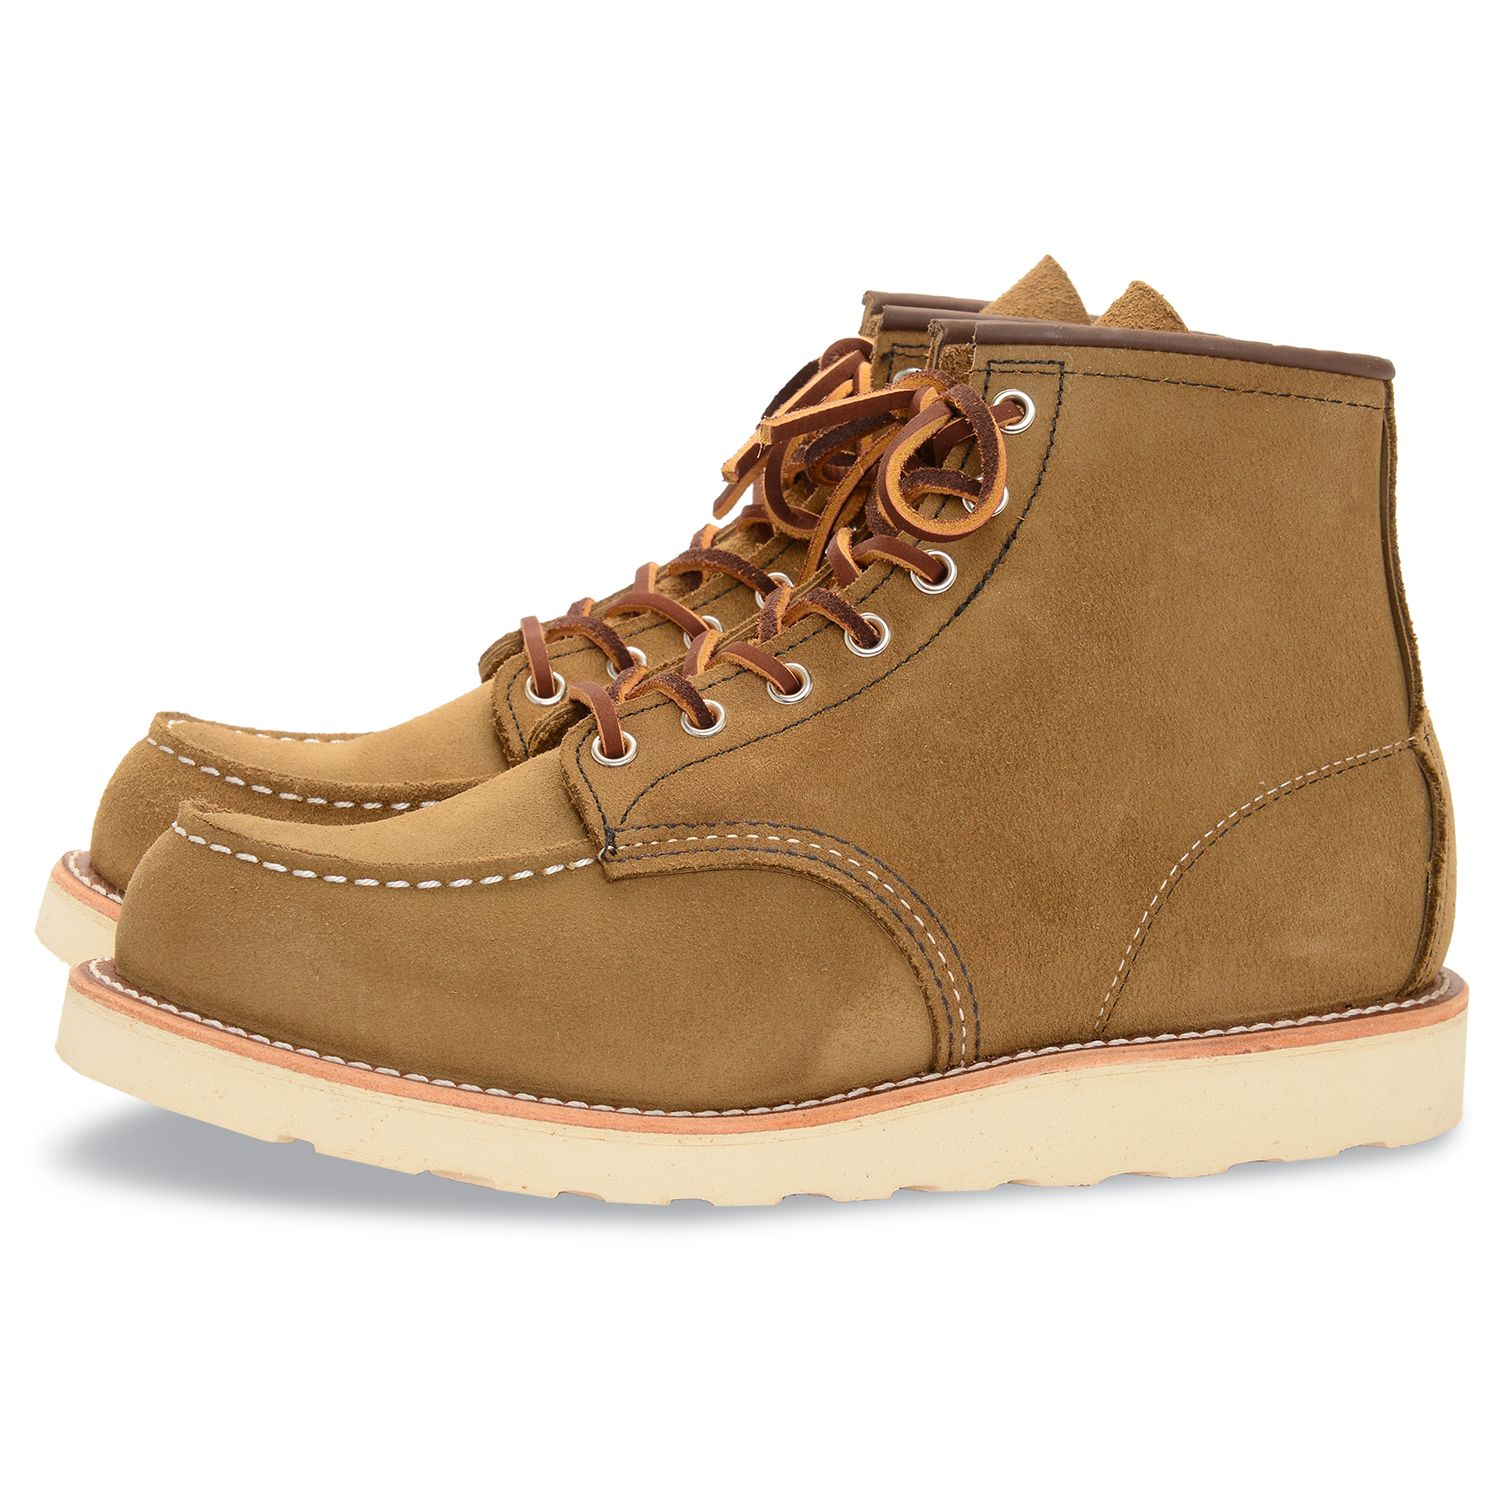 Red Wing Red Wing 875 Moc Toe Boot, Olive Mohave